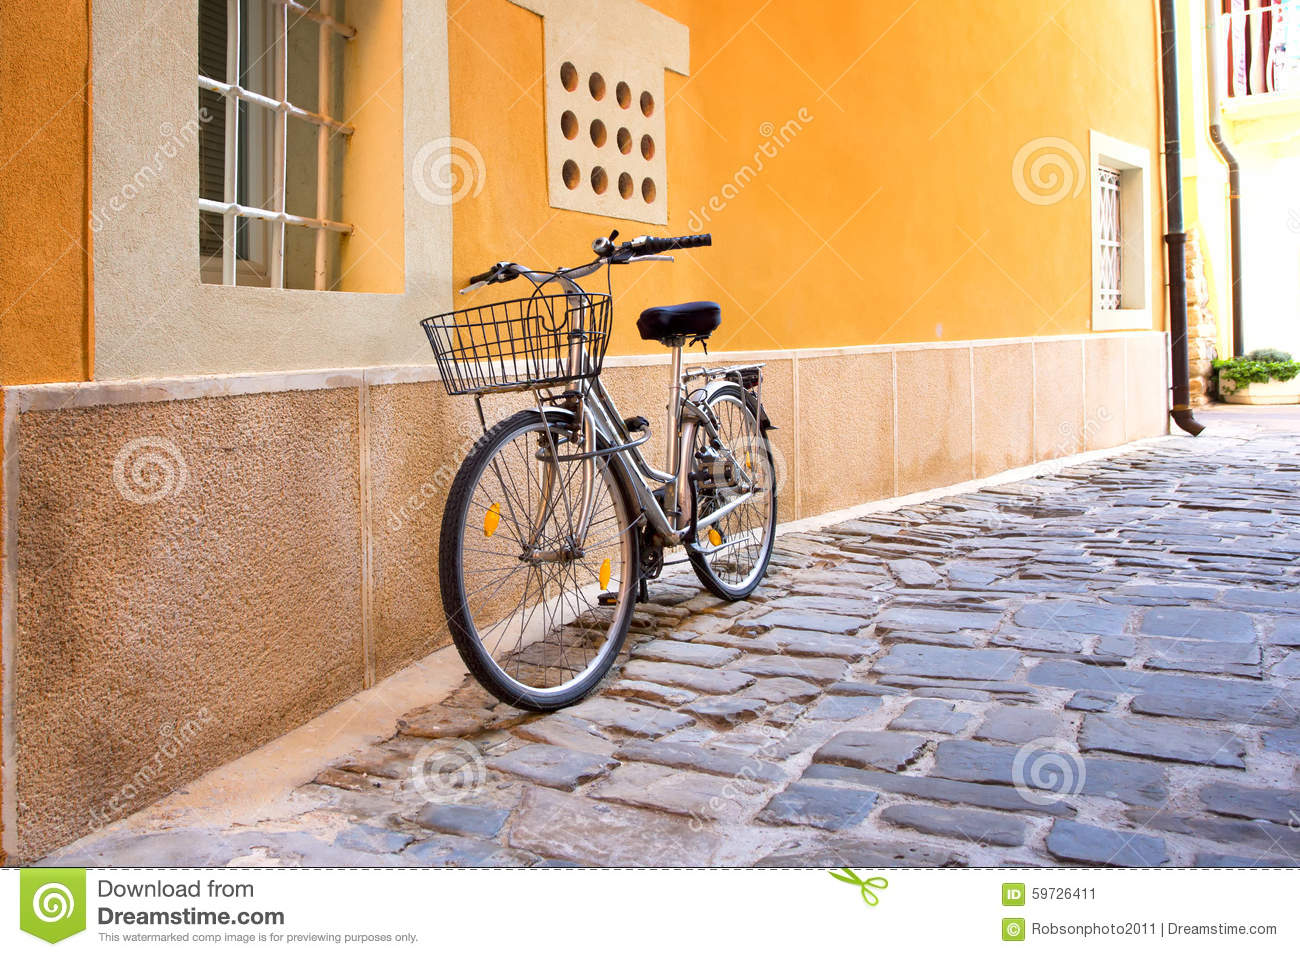 Old Rustic Bike With Flowers In Basket Leaning Against Wall Stock ...